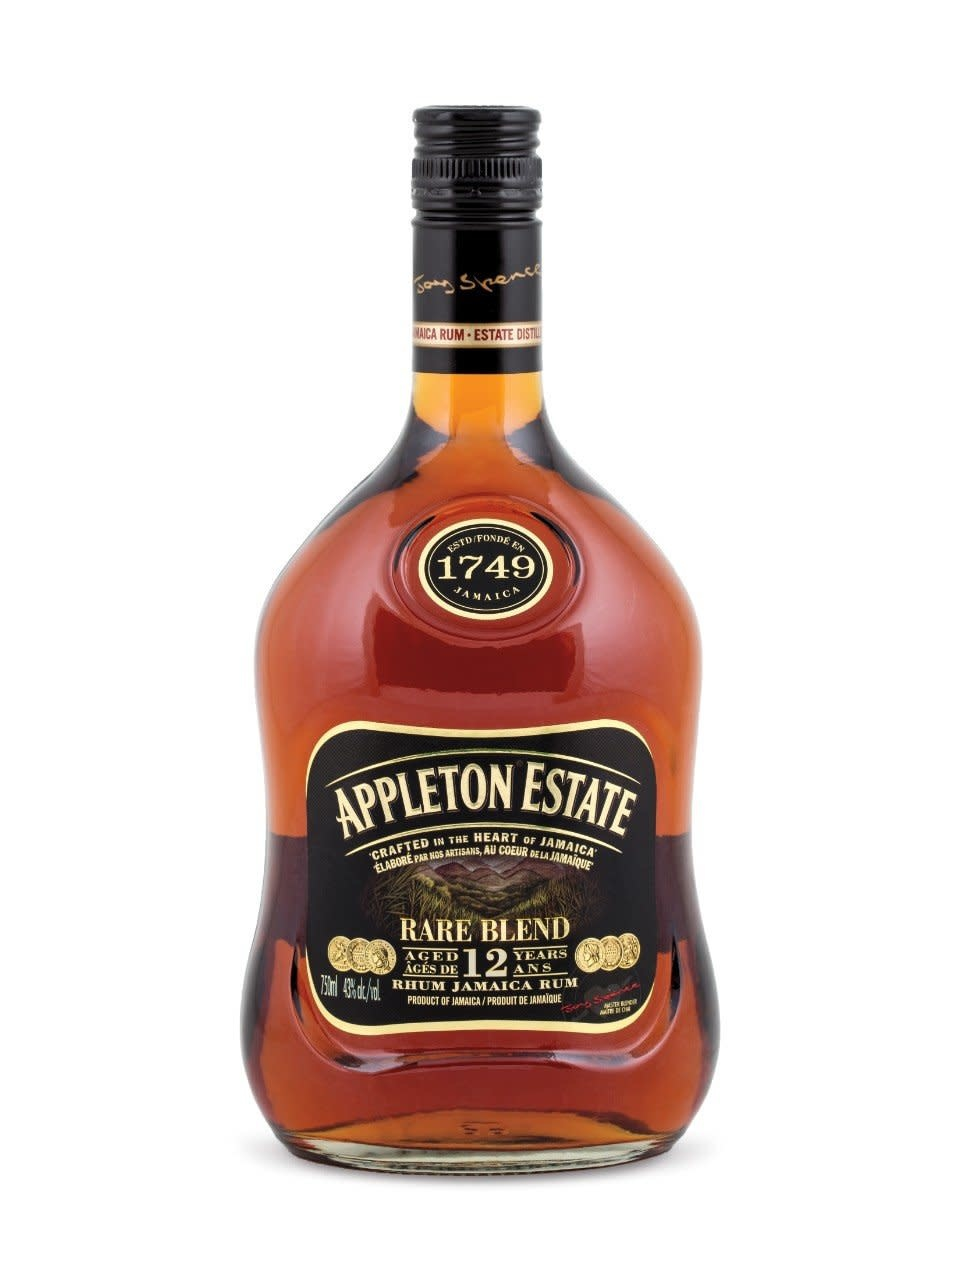 Appleton Estate Rare Blend Rum 12 Yrs. 750ml